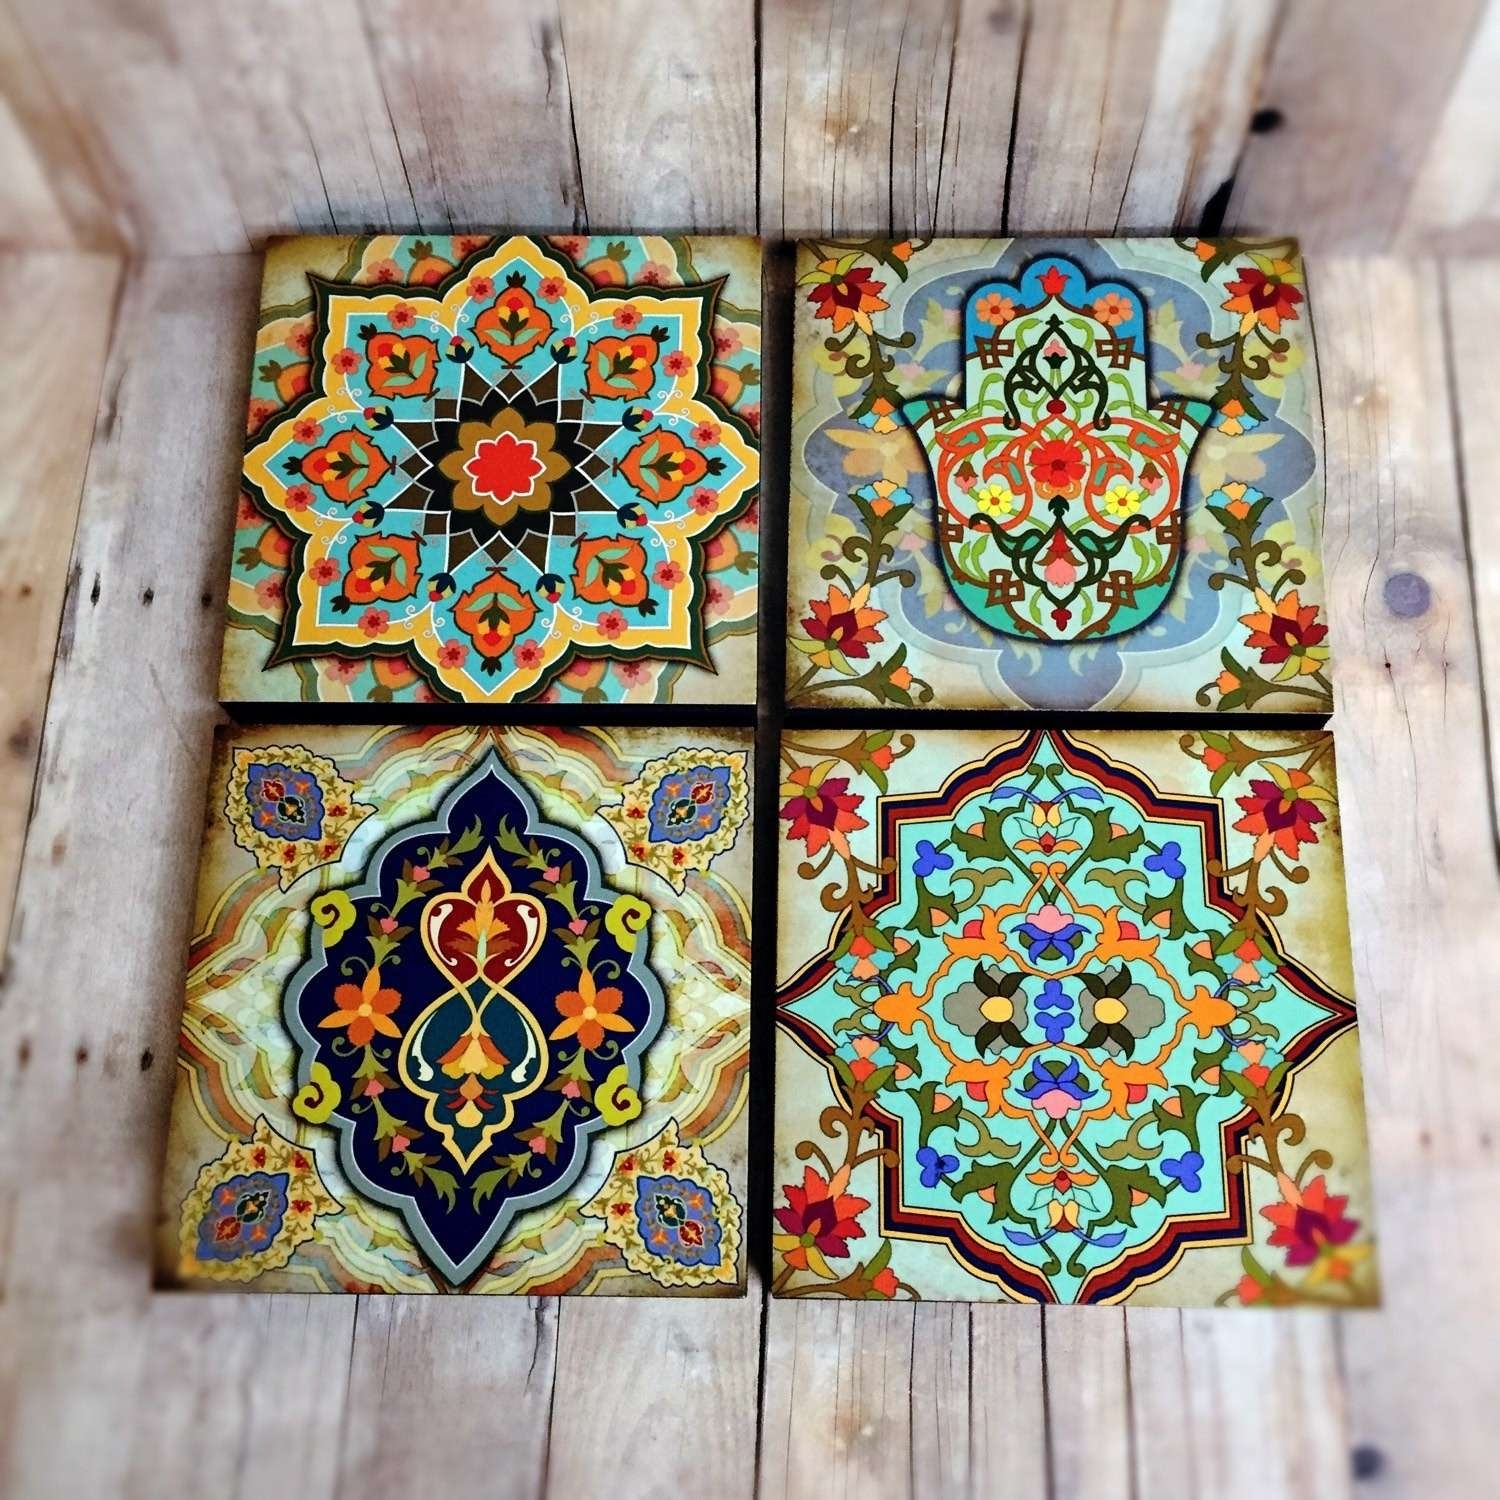 Moroccan Vintage Moroccan Wall Art – Wall Decoration And Wall Art Ideas Regarding Newest Moroccan Wall Art (View 4 of 20)